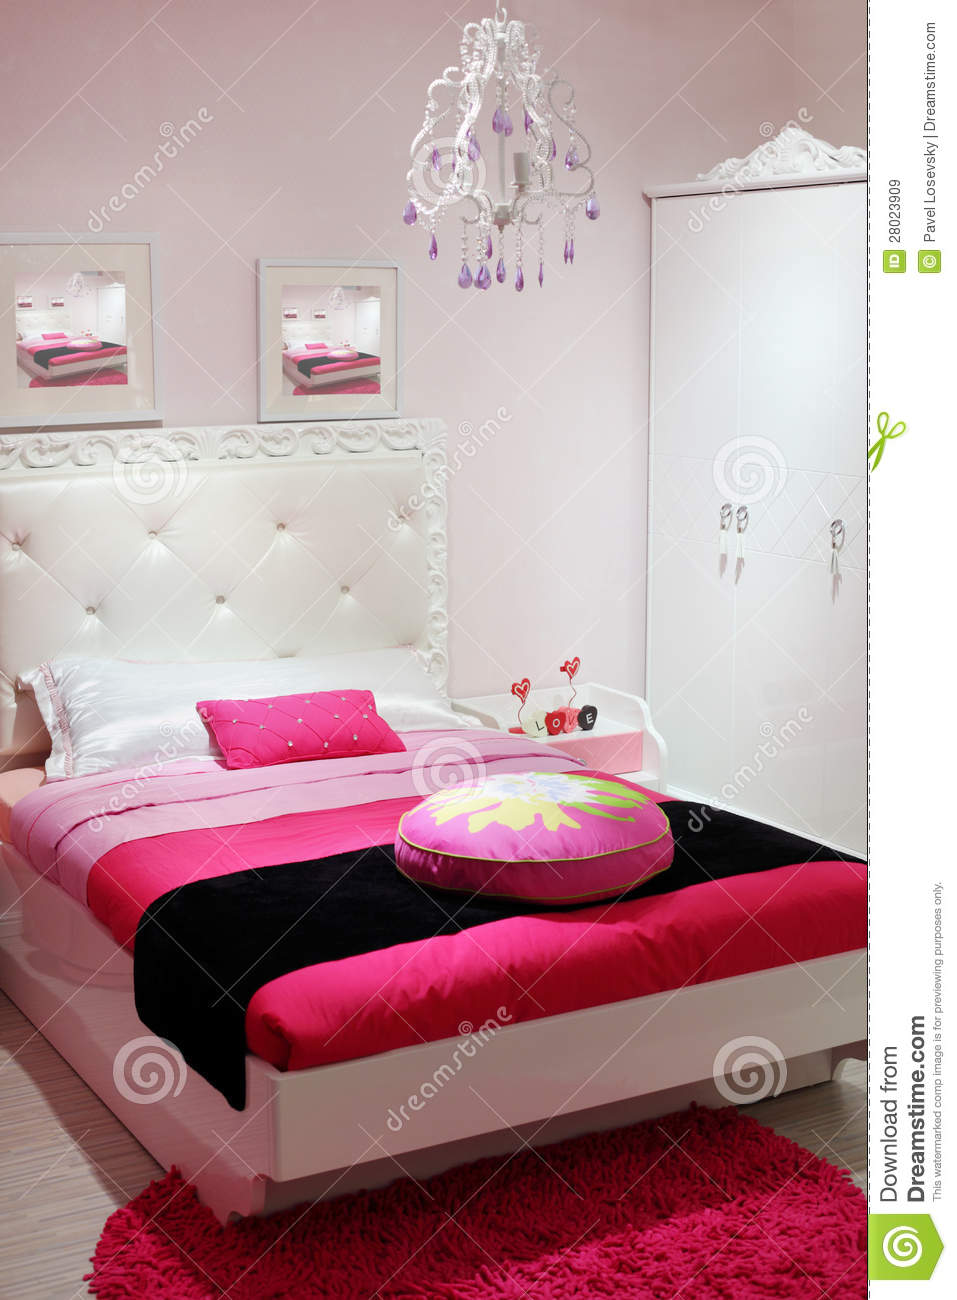 chambre coucher avec la garde robe blanche et le tapis rose images libres de droits image. Black Bedroom Furniture Sets. Home Design Ideas